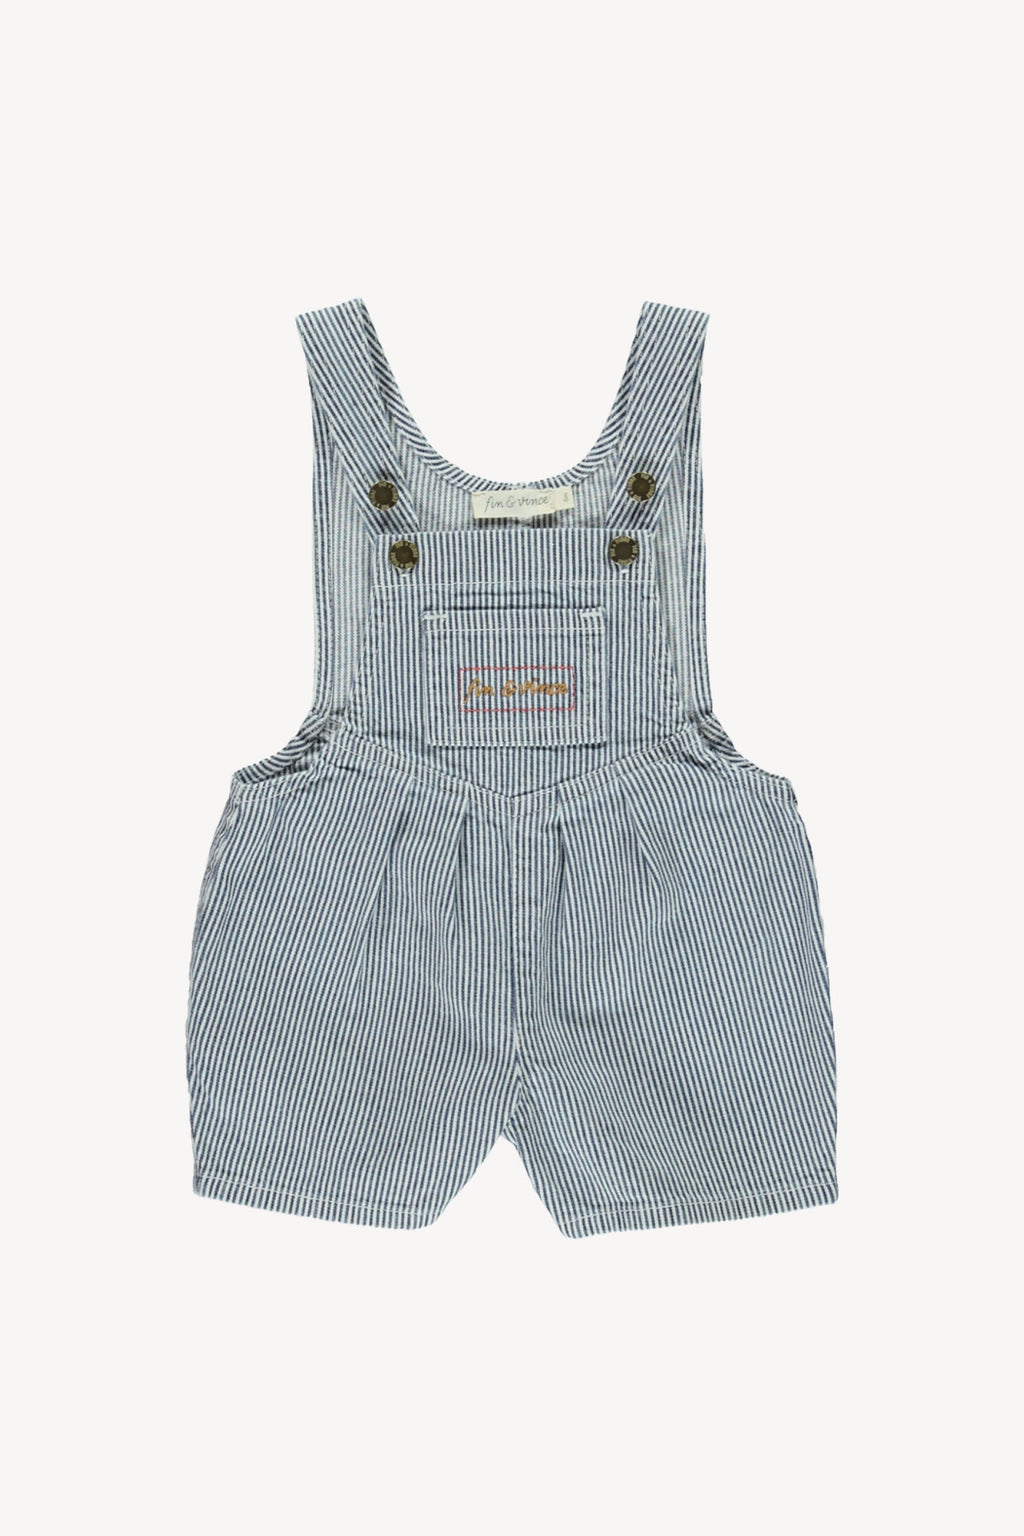 Fin and Vince - Denim Short Overall (Stripe) - Last 0/3